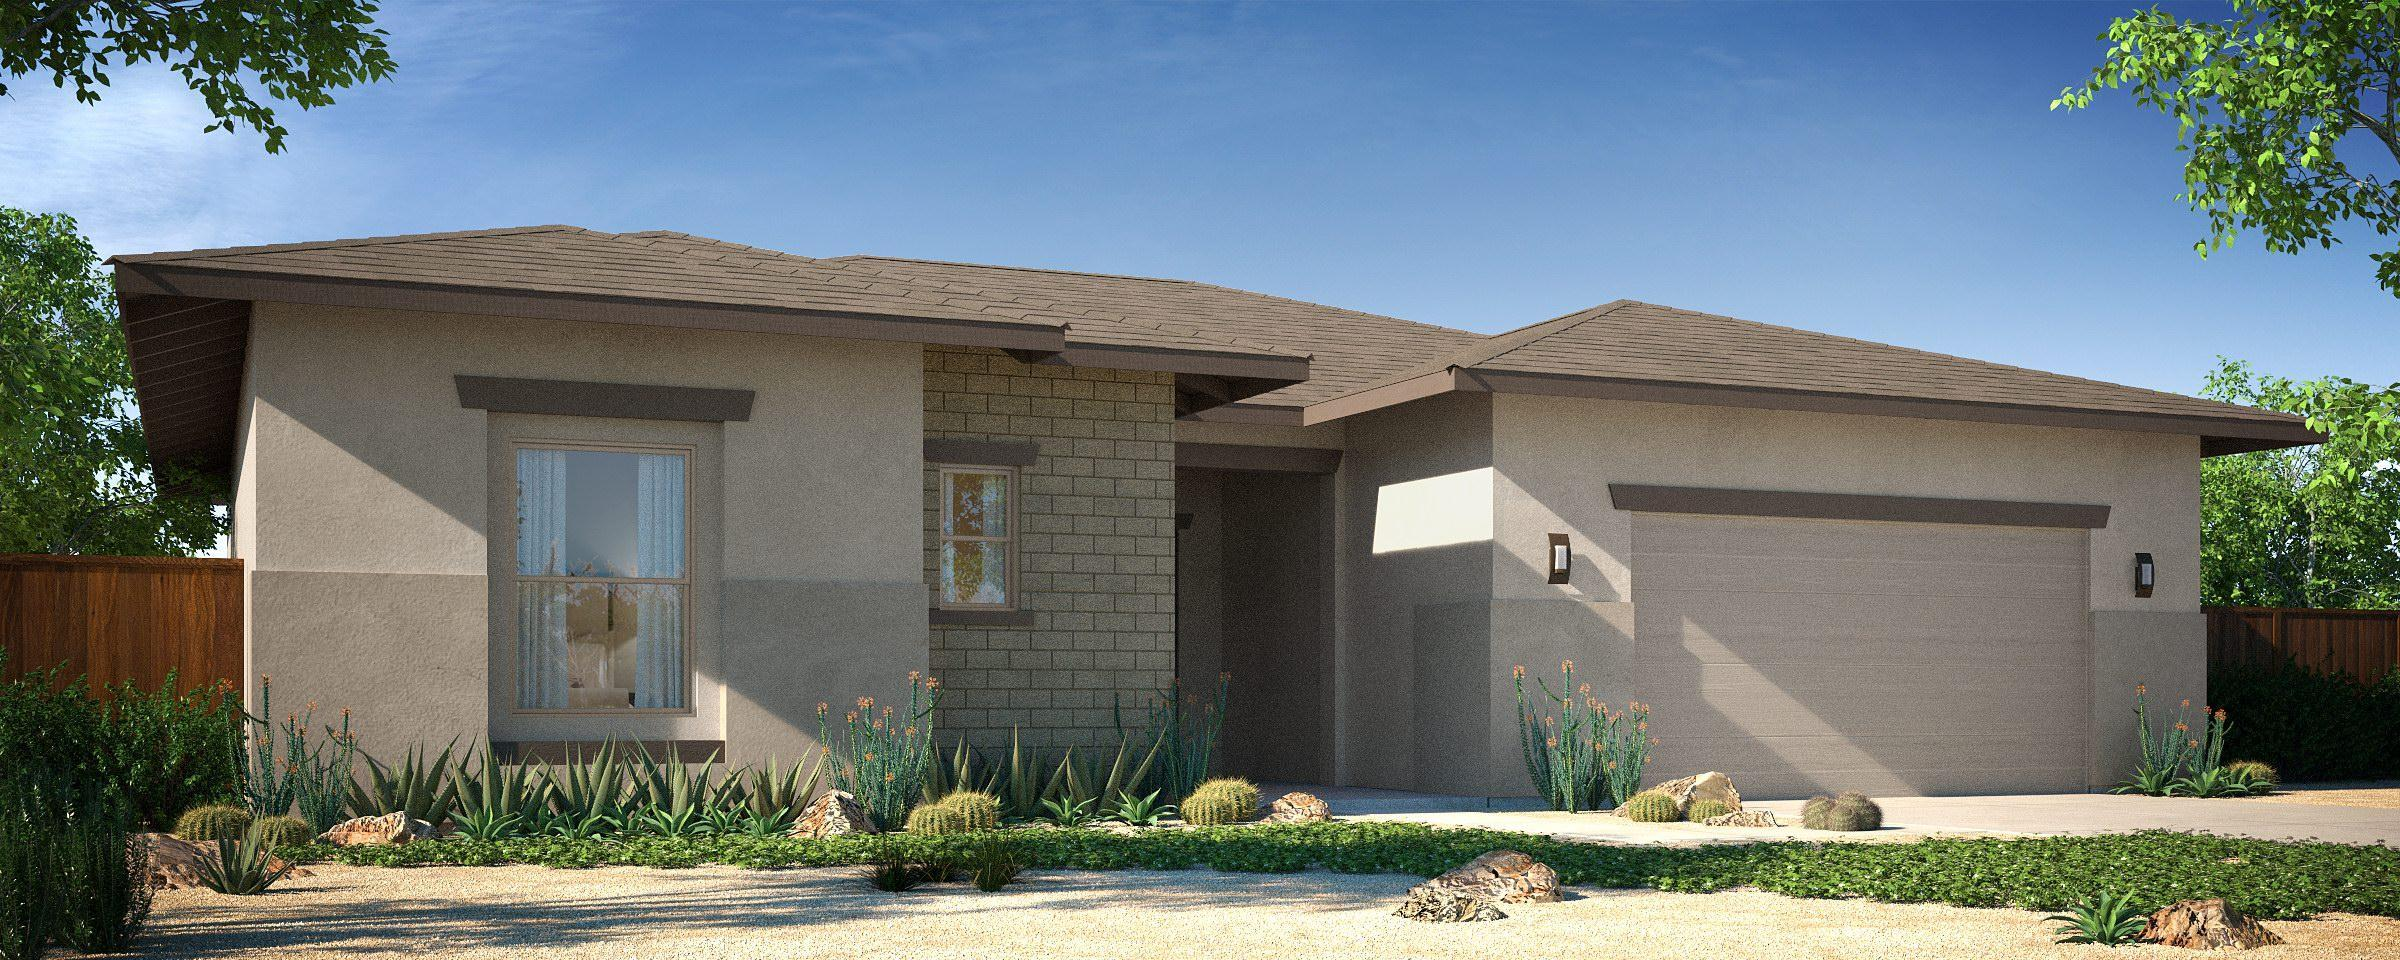 maren plan at millenia in fernley  nv by carter hill homes